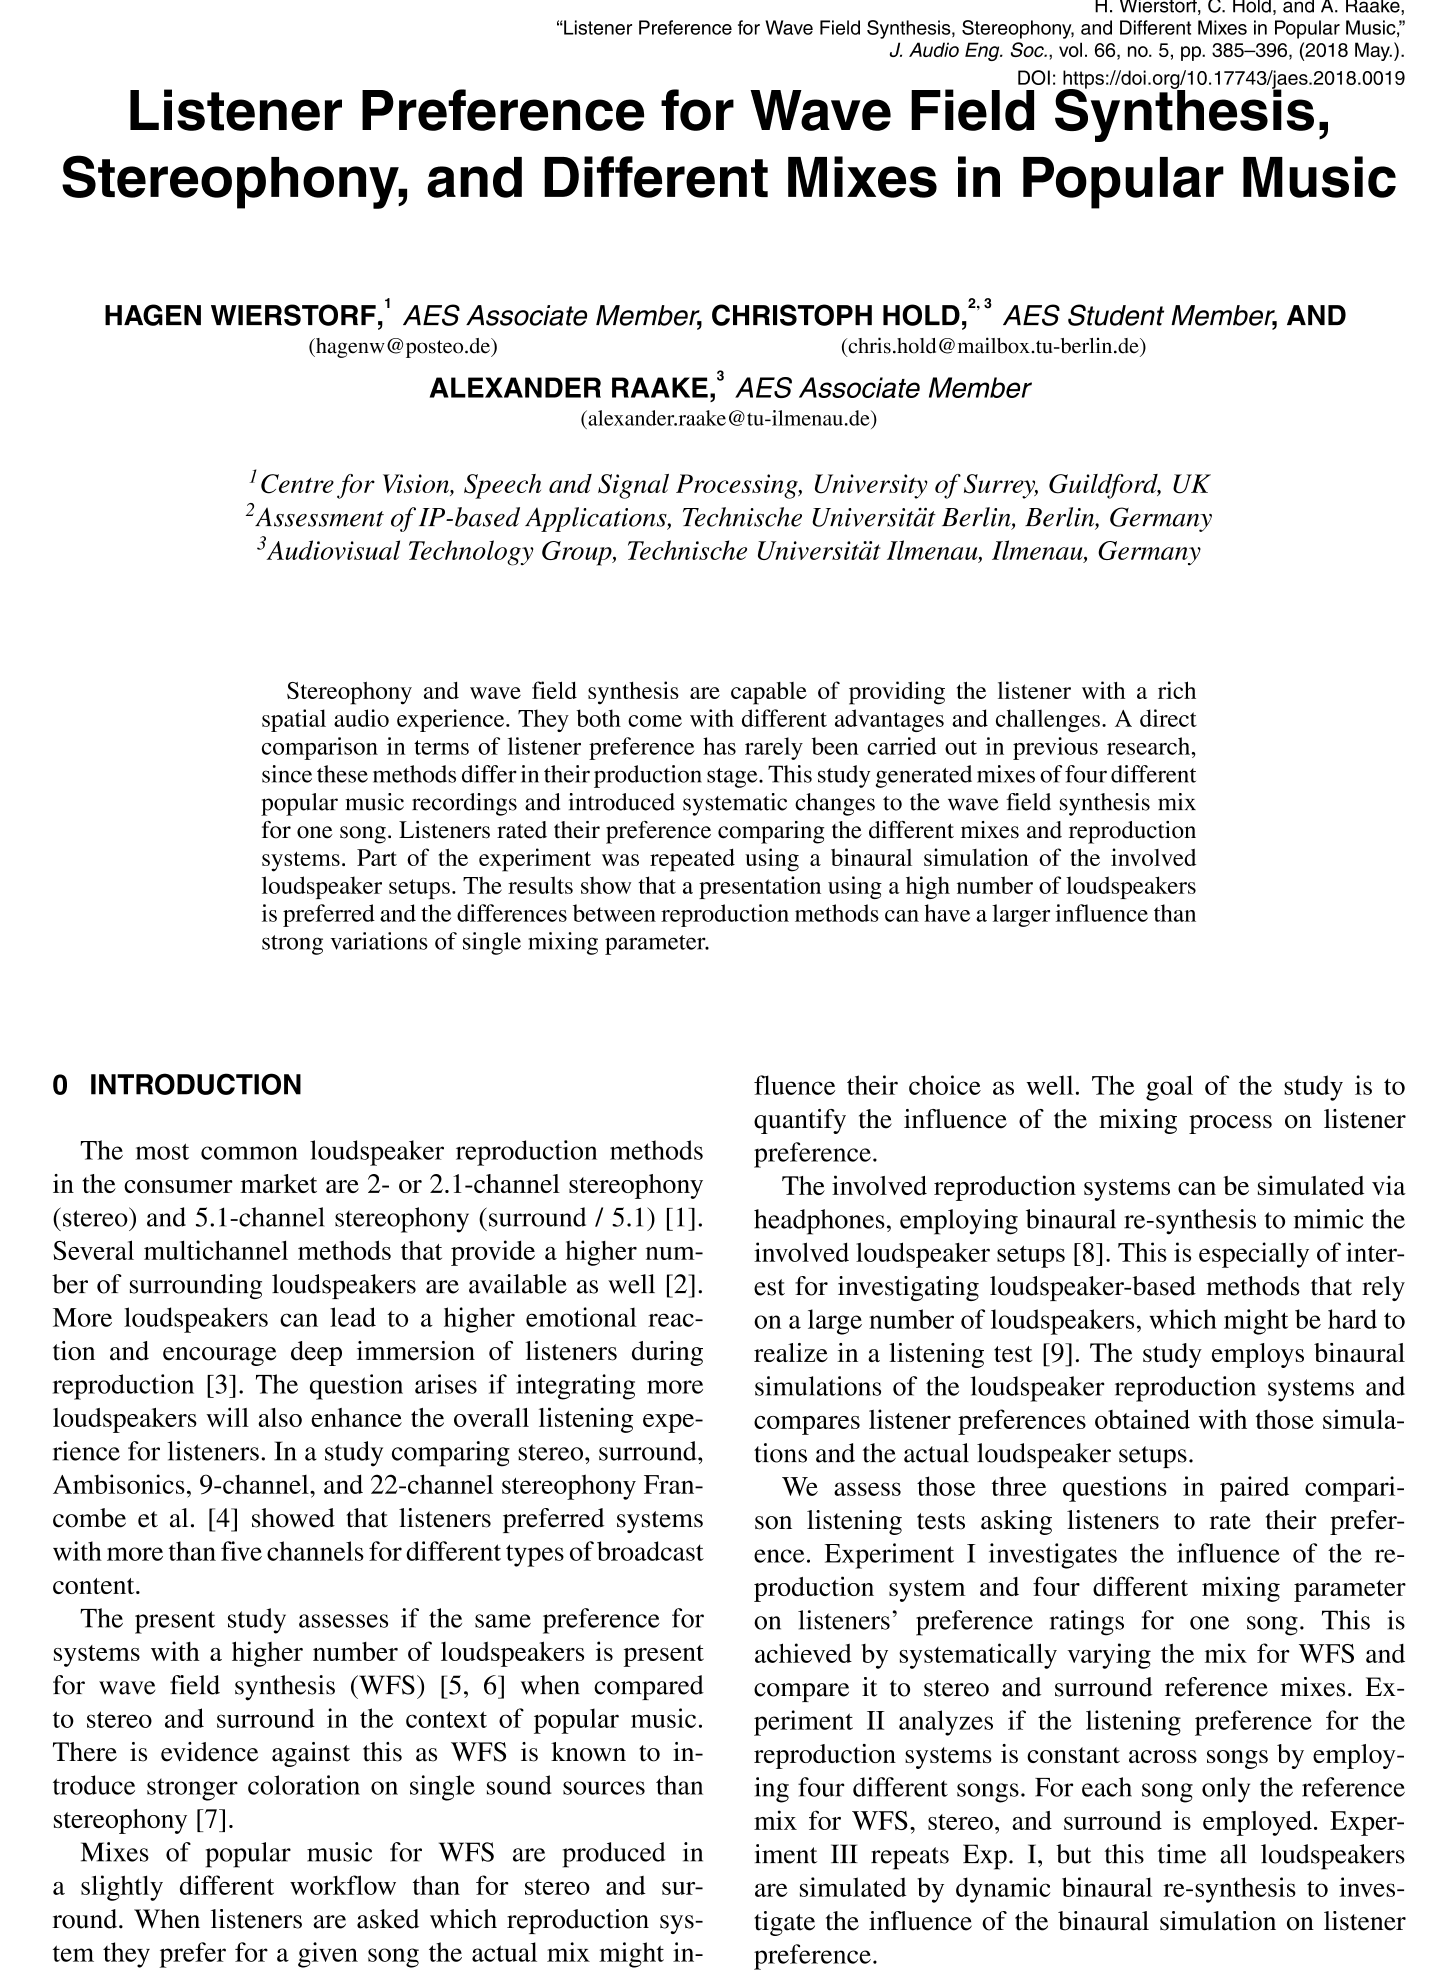 AES E-Library » Listener Preference for Wave Field Synthesis ...